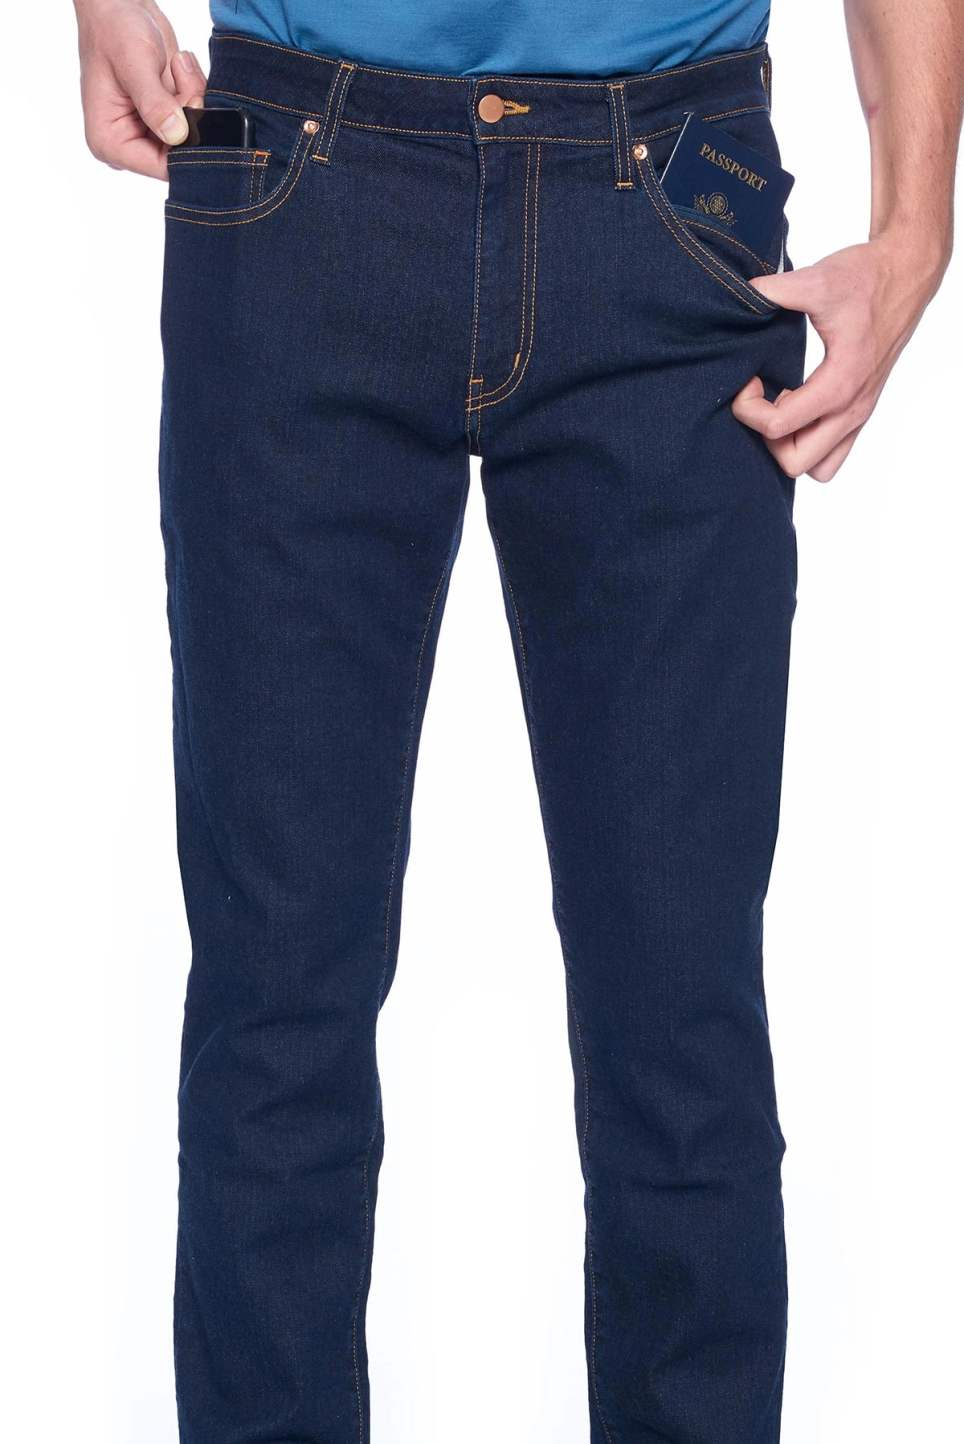 Aviator's The Best Travel Jeans in the World